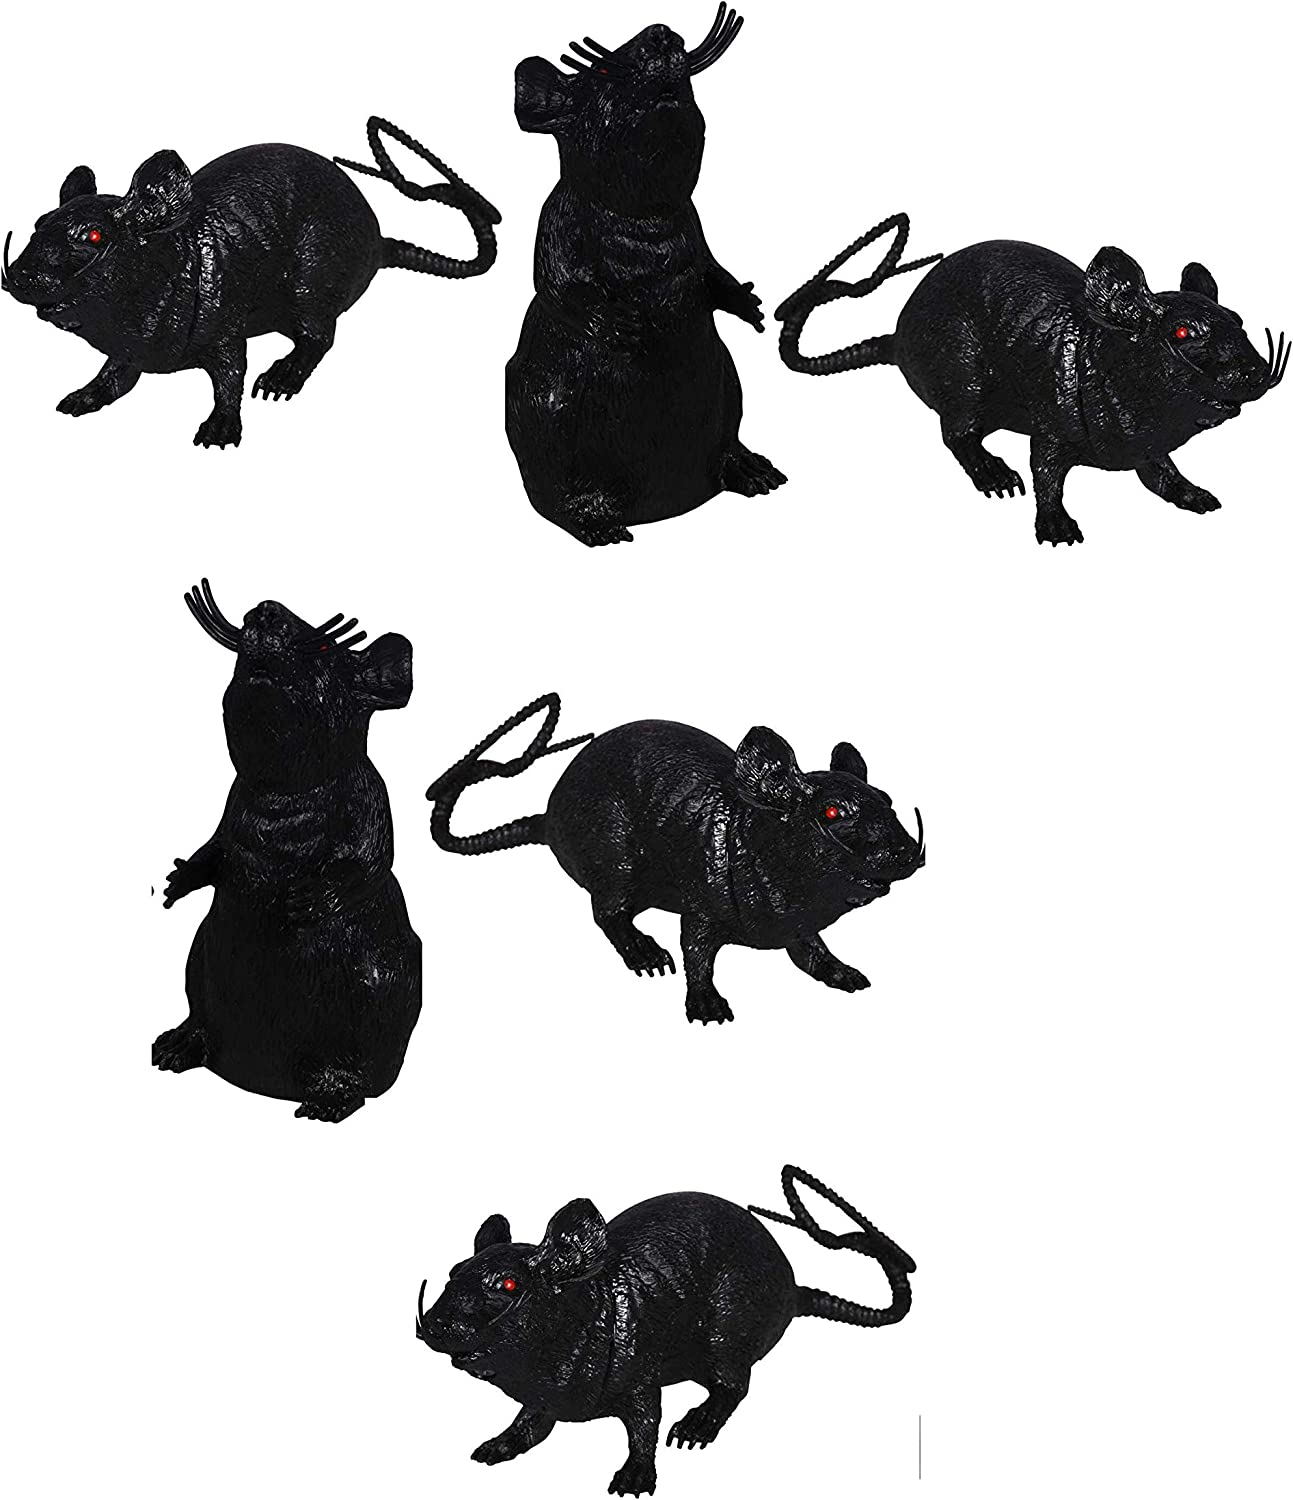 Black 6-Pack Greenbrier Plastic Squeezable Squeaking Rats Spooky Scary Creepy Halloween Decor